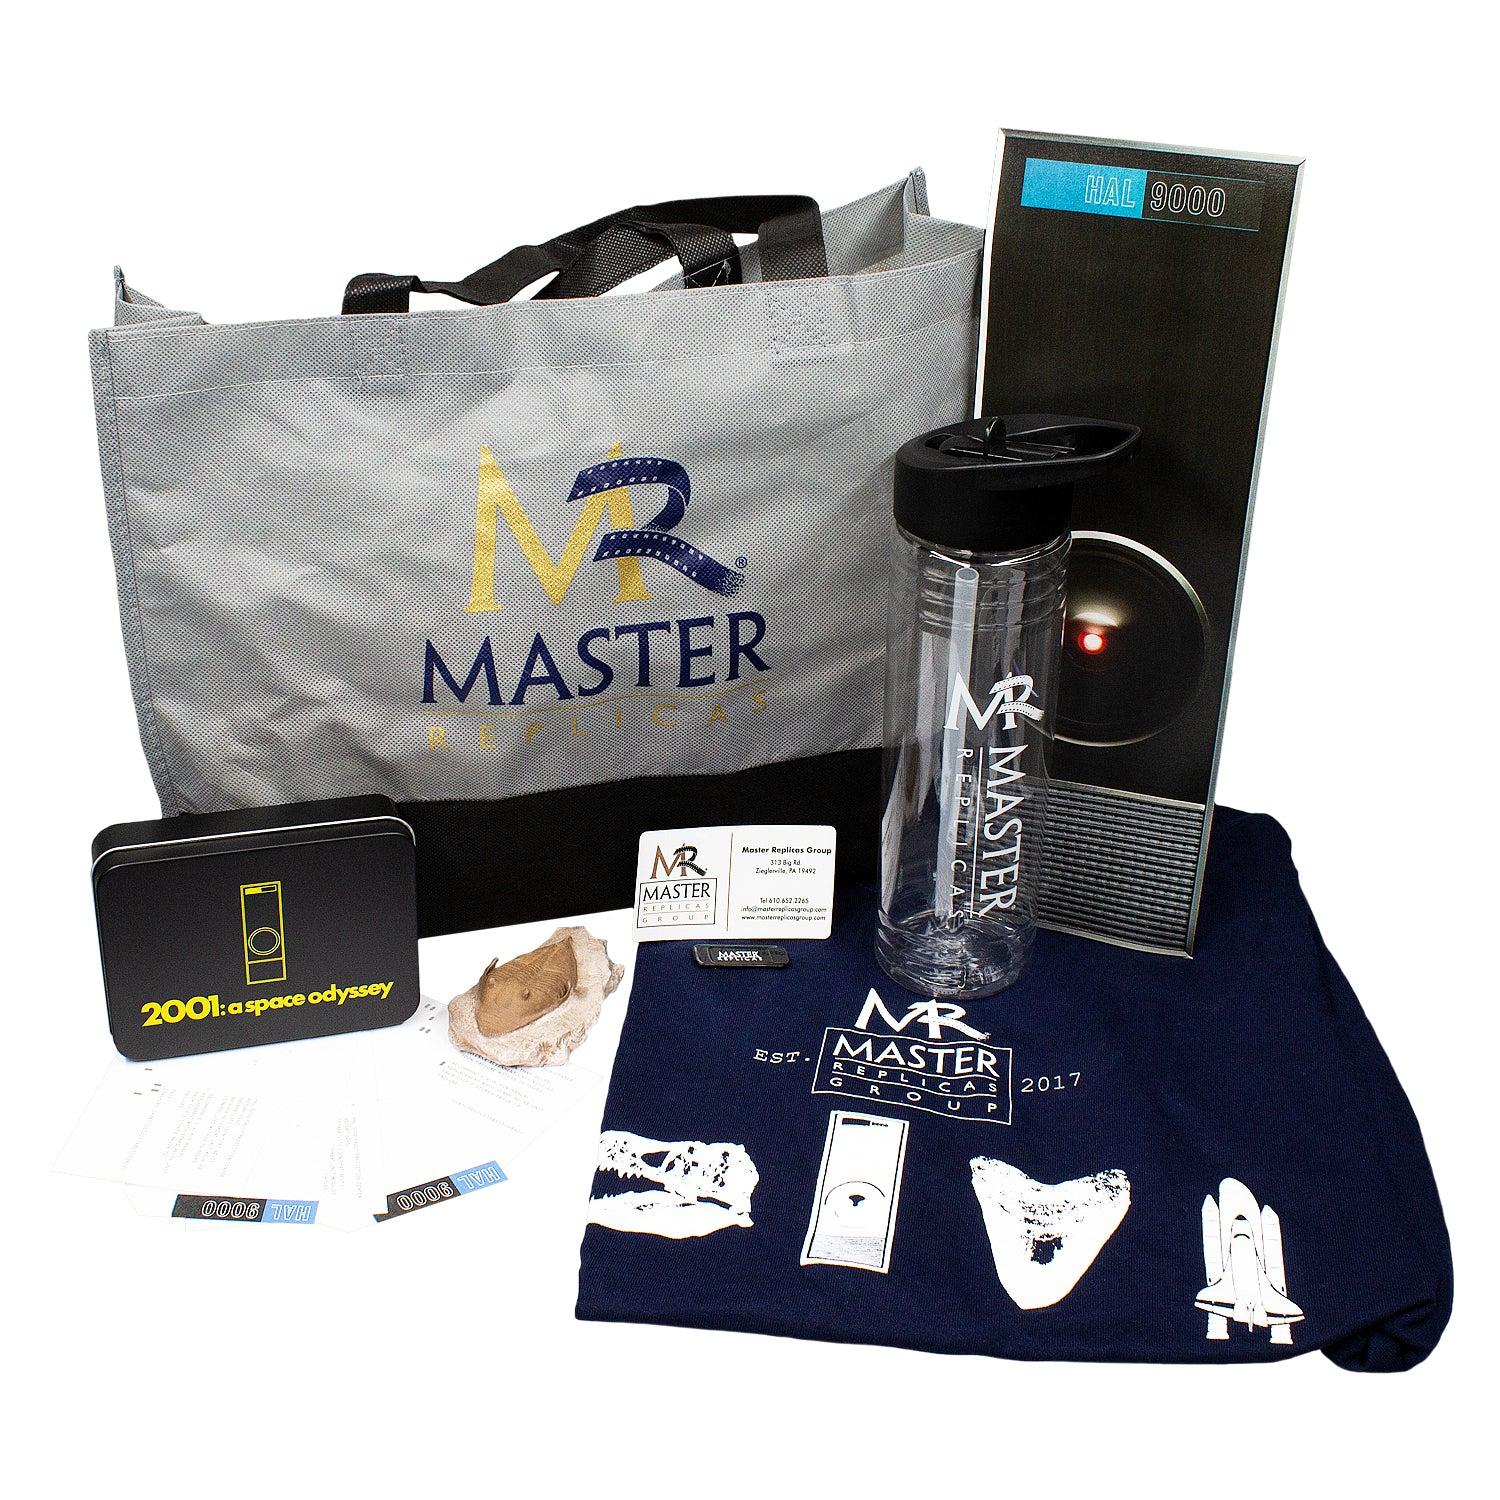 Master Replicas Swag Bag